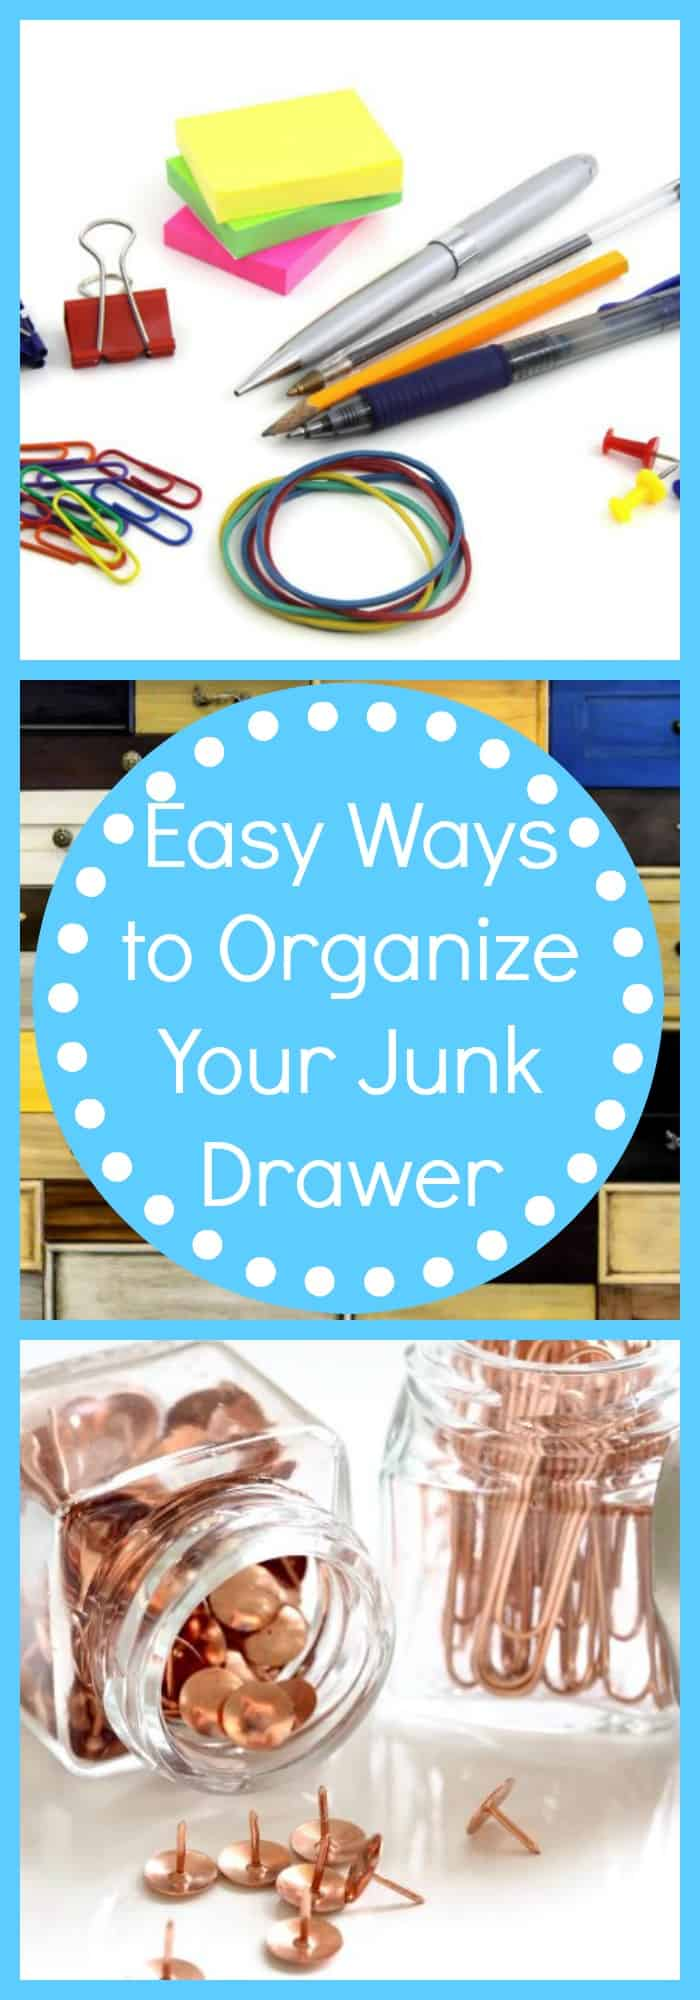 Easy Ways to Organize Your Junk Drawer